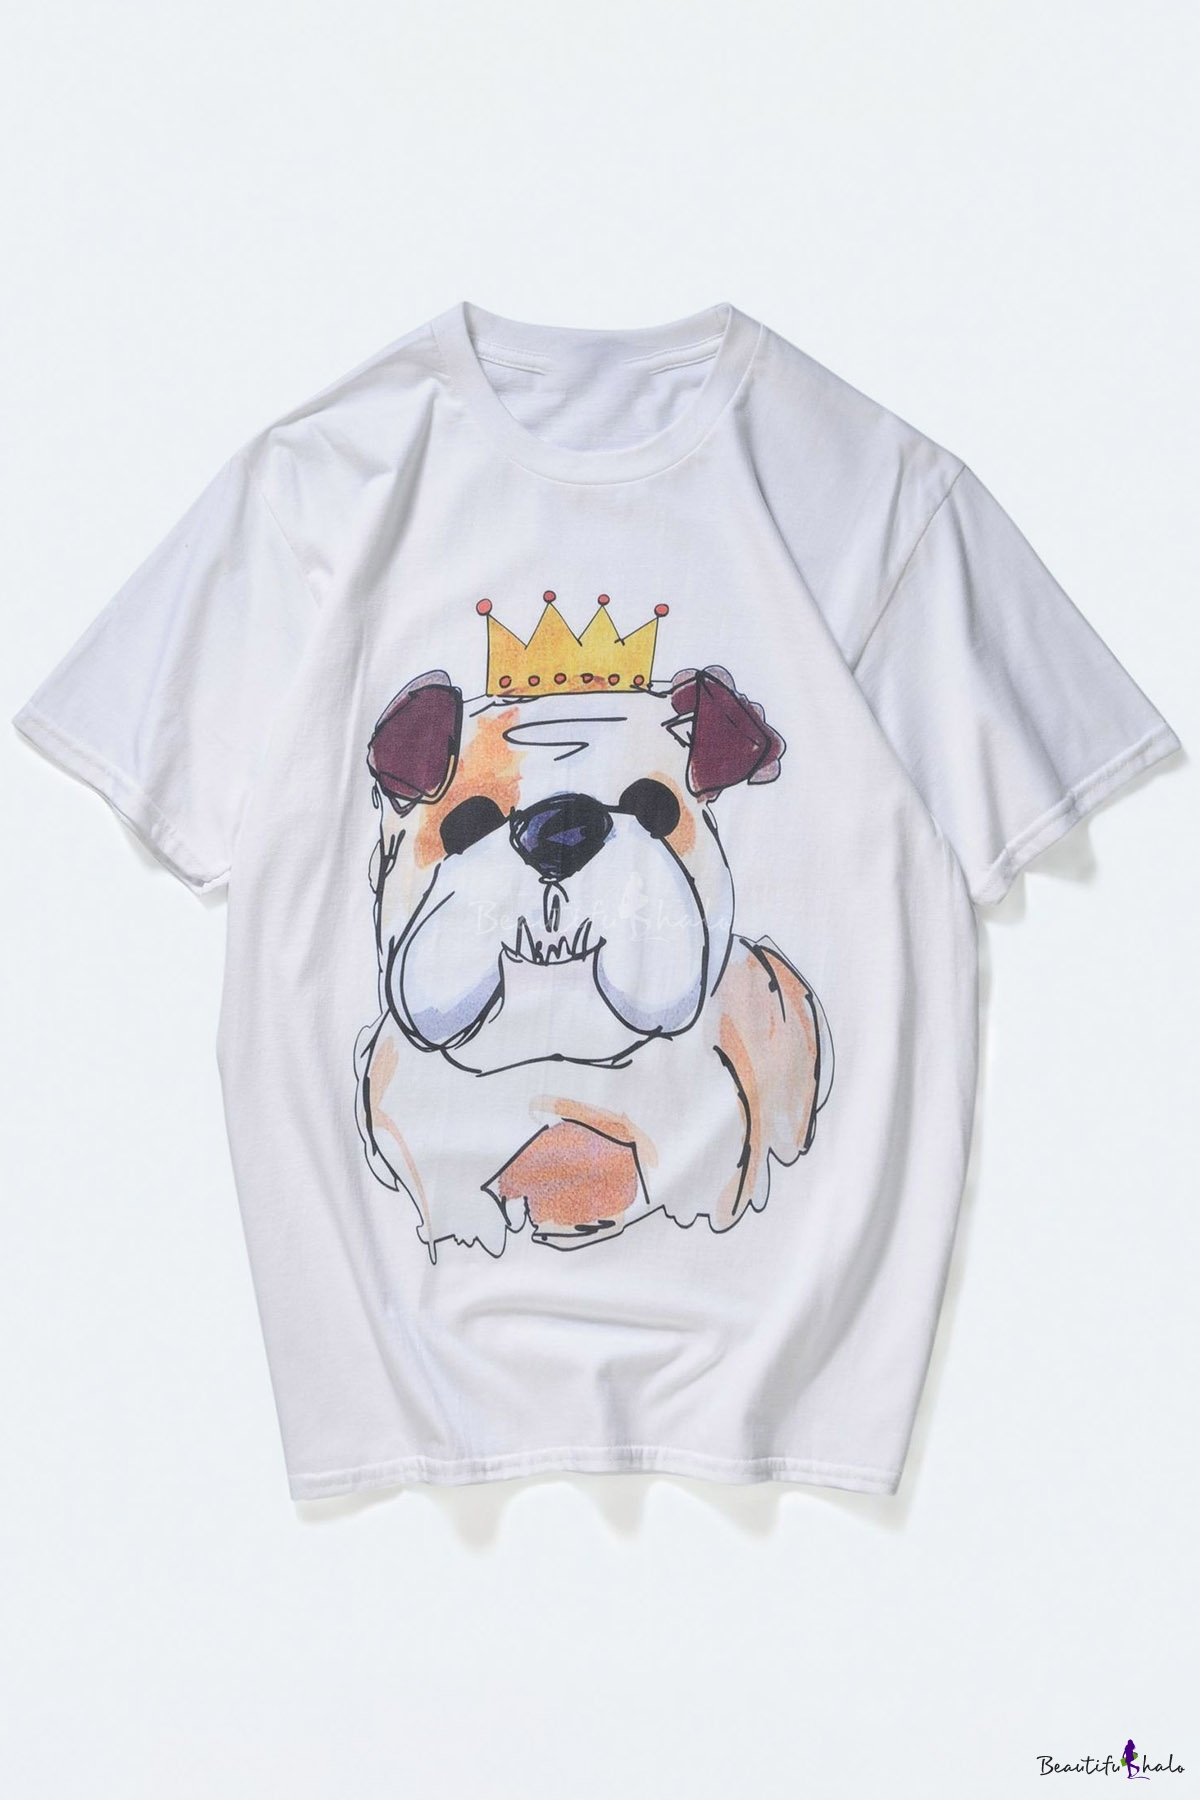 Cute Dog Cartoon Crown Print Round Neck Short Sleeves Casual Tee Beautifulhalo Com Vector illustration for greeting card, poster, or print on clothes. beautifulhalo